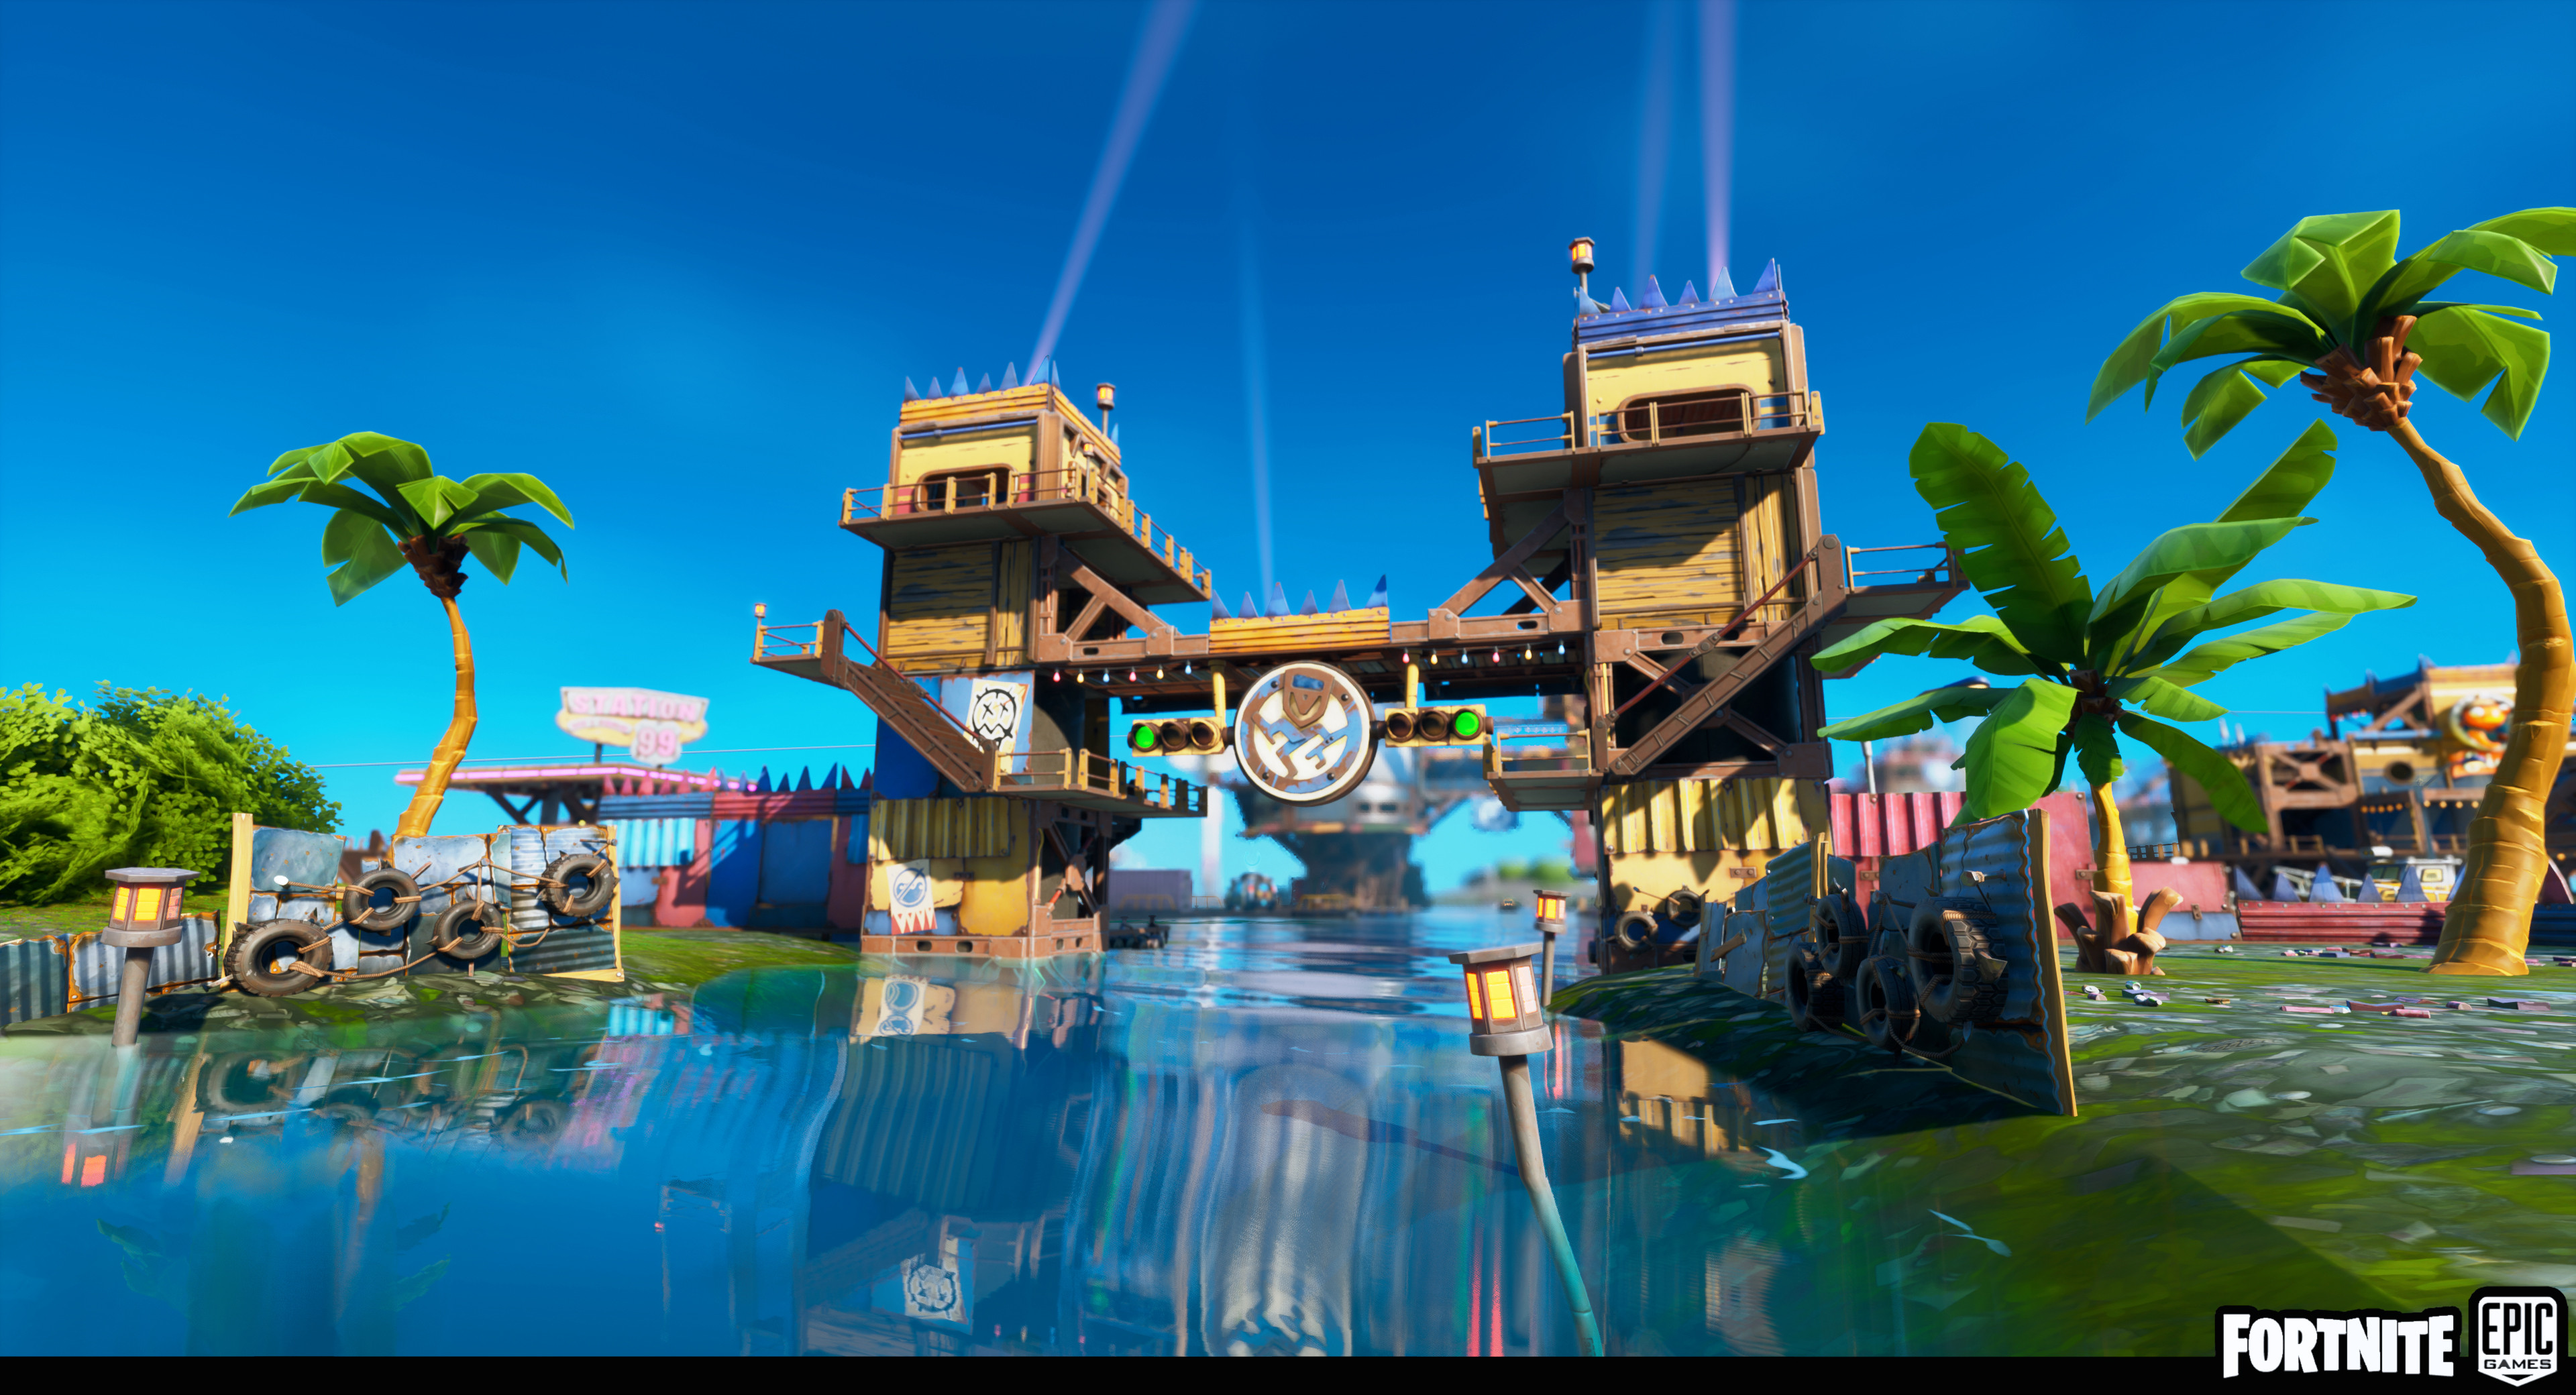 The Entrance of the Fortilla. Welcoming the player to a colourful town on the water made out of big salvaged metal parts.